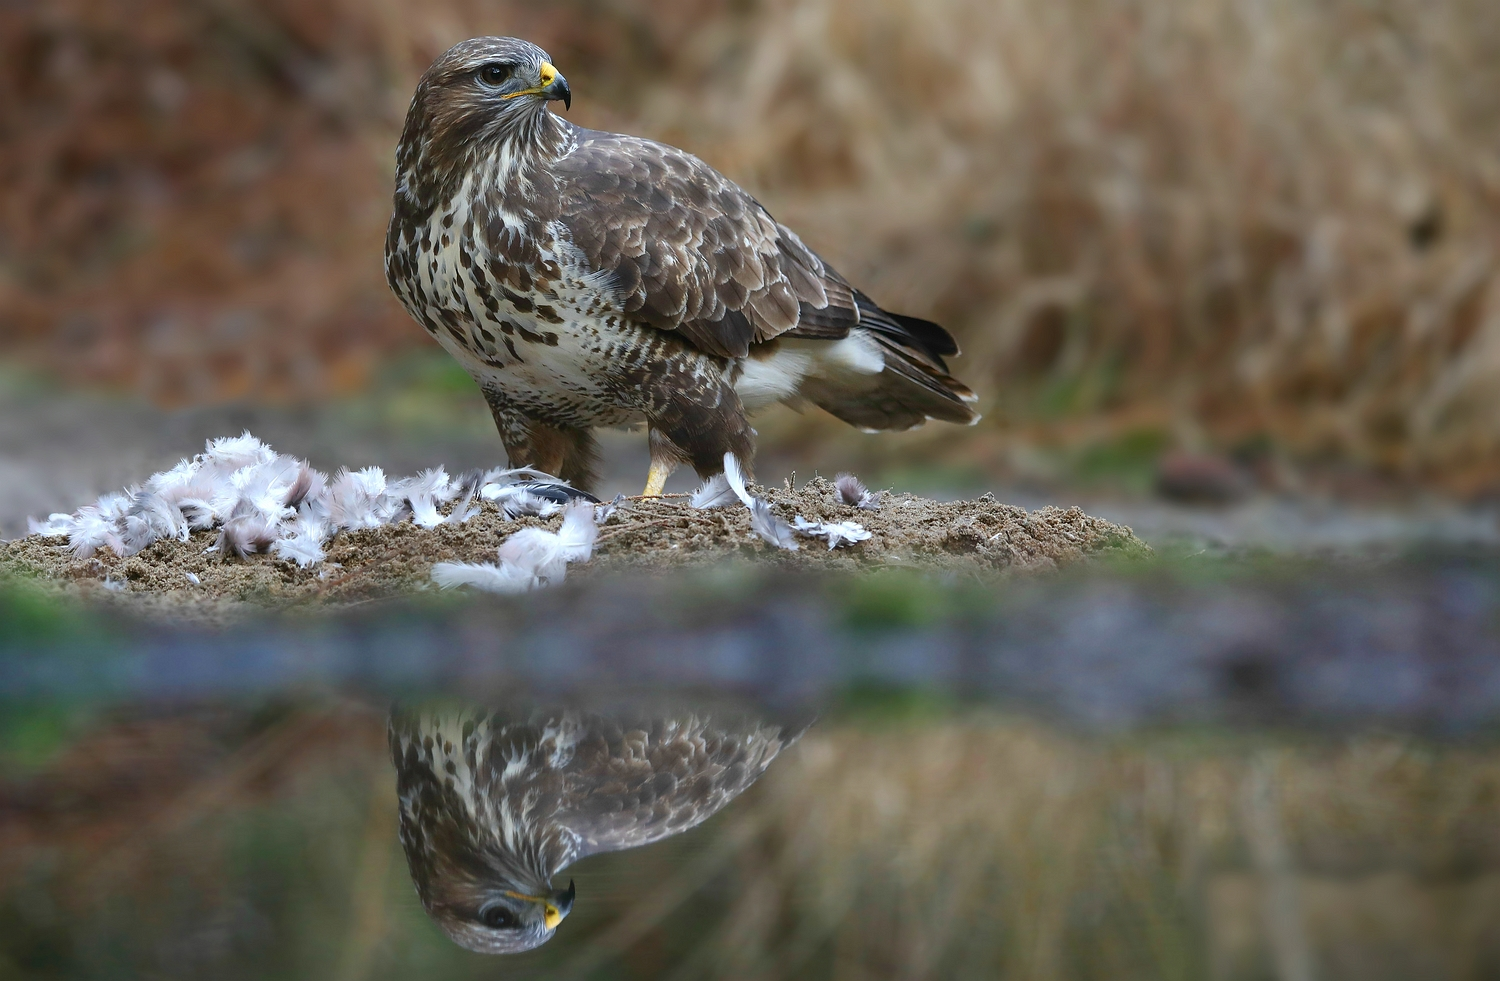 The Living Forest (599) : Buzzard